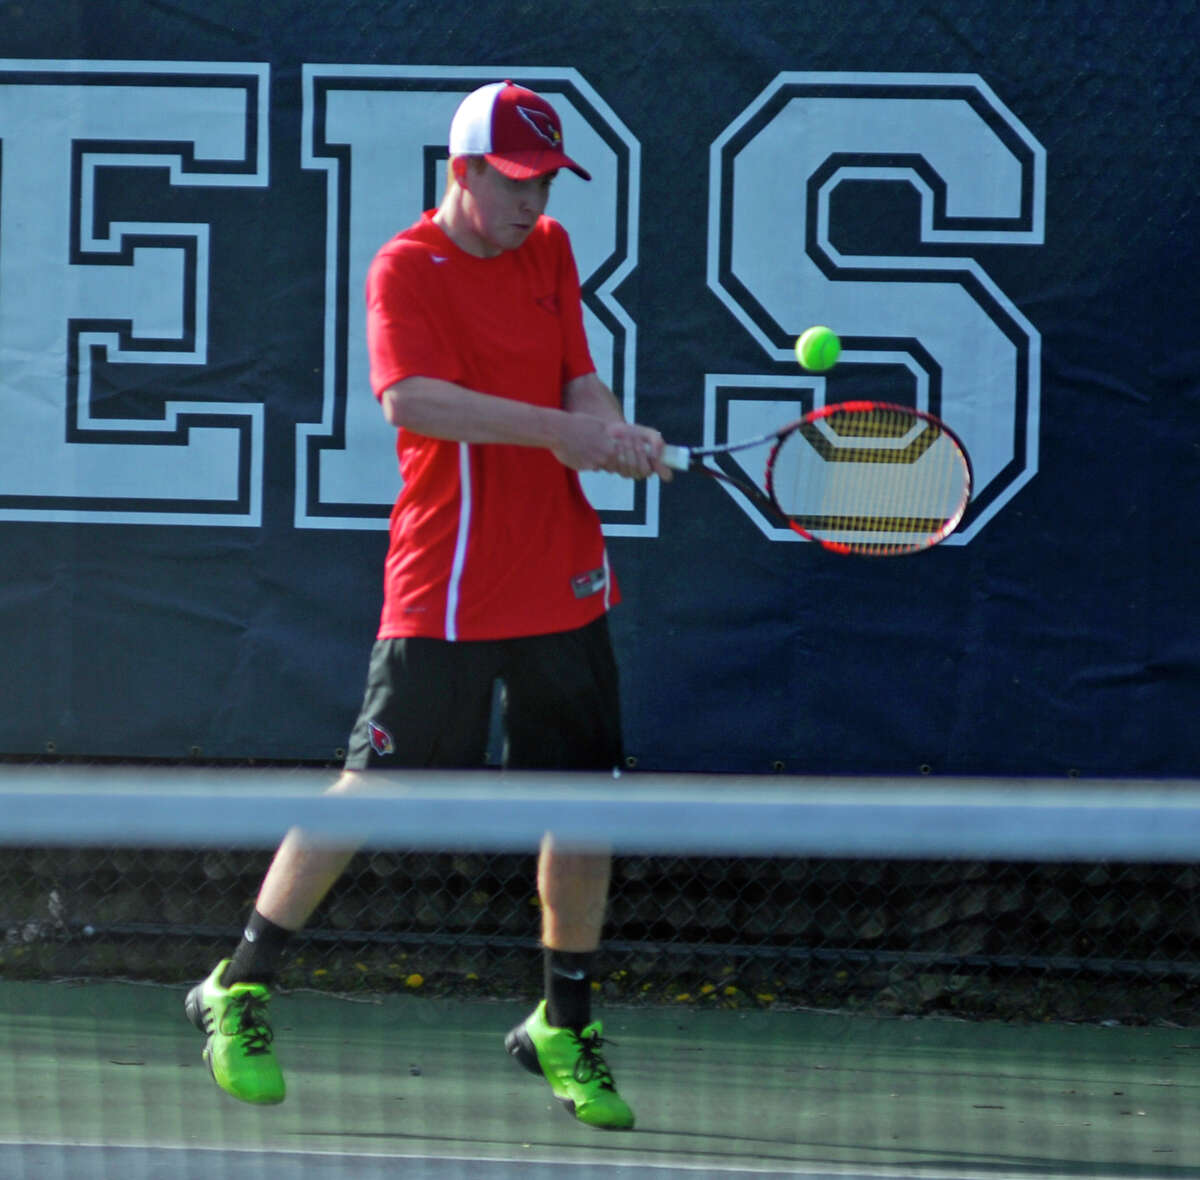 Greenwich's Tyler Dagnino returns a shot during a boys tennis game against Staples on Monday, April 18th, 2016.